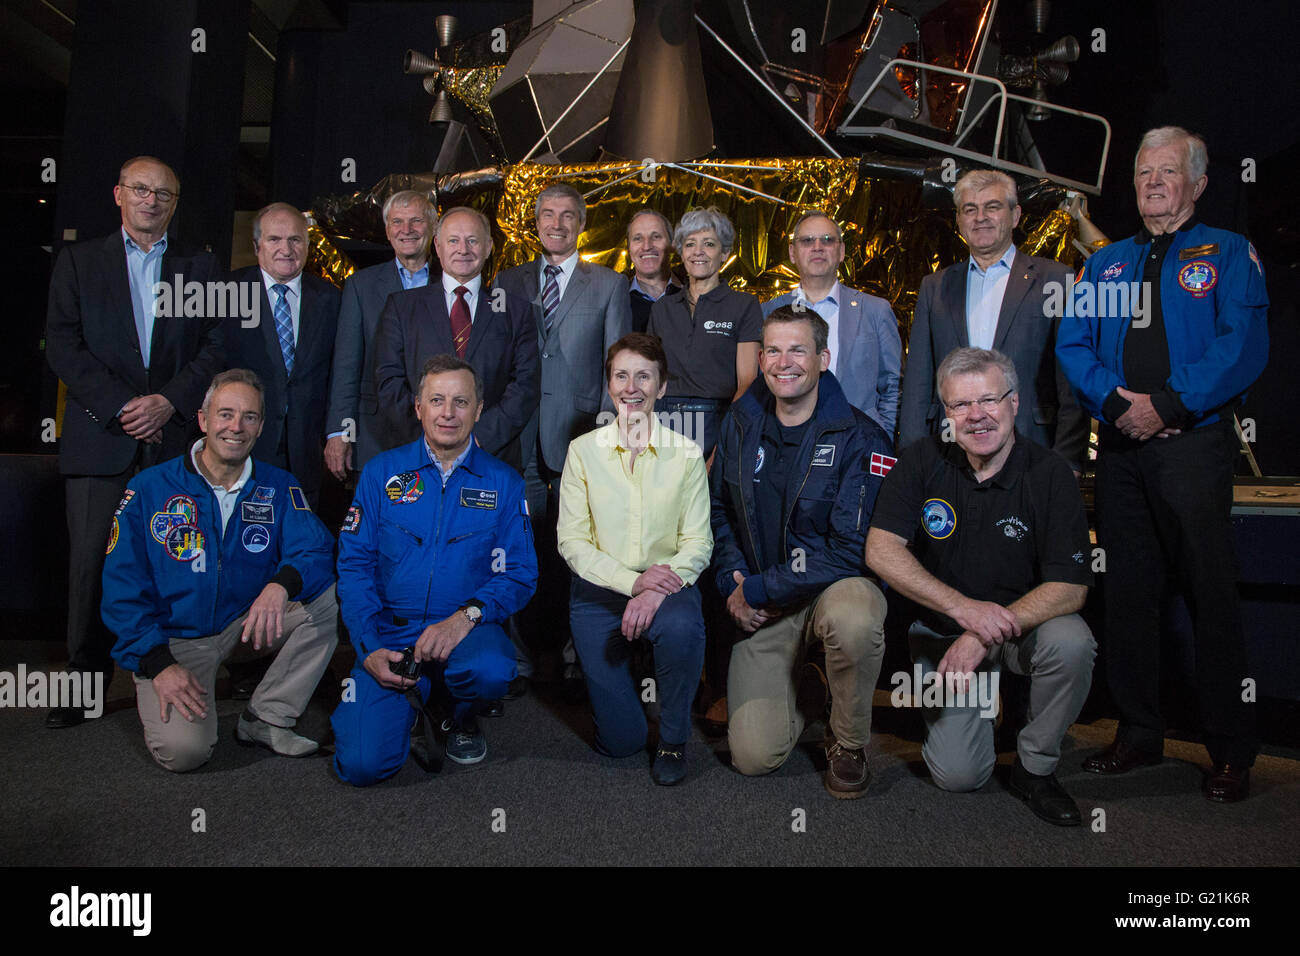 London, UK. 20 May 2016. Members of the European Association of Space Explorers and the crew from the Soyuz TM-11 - Stock Image